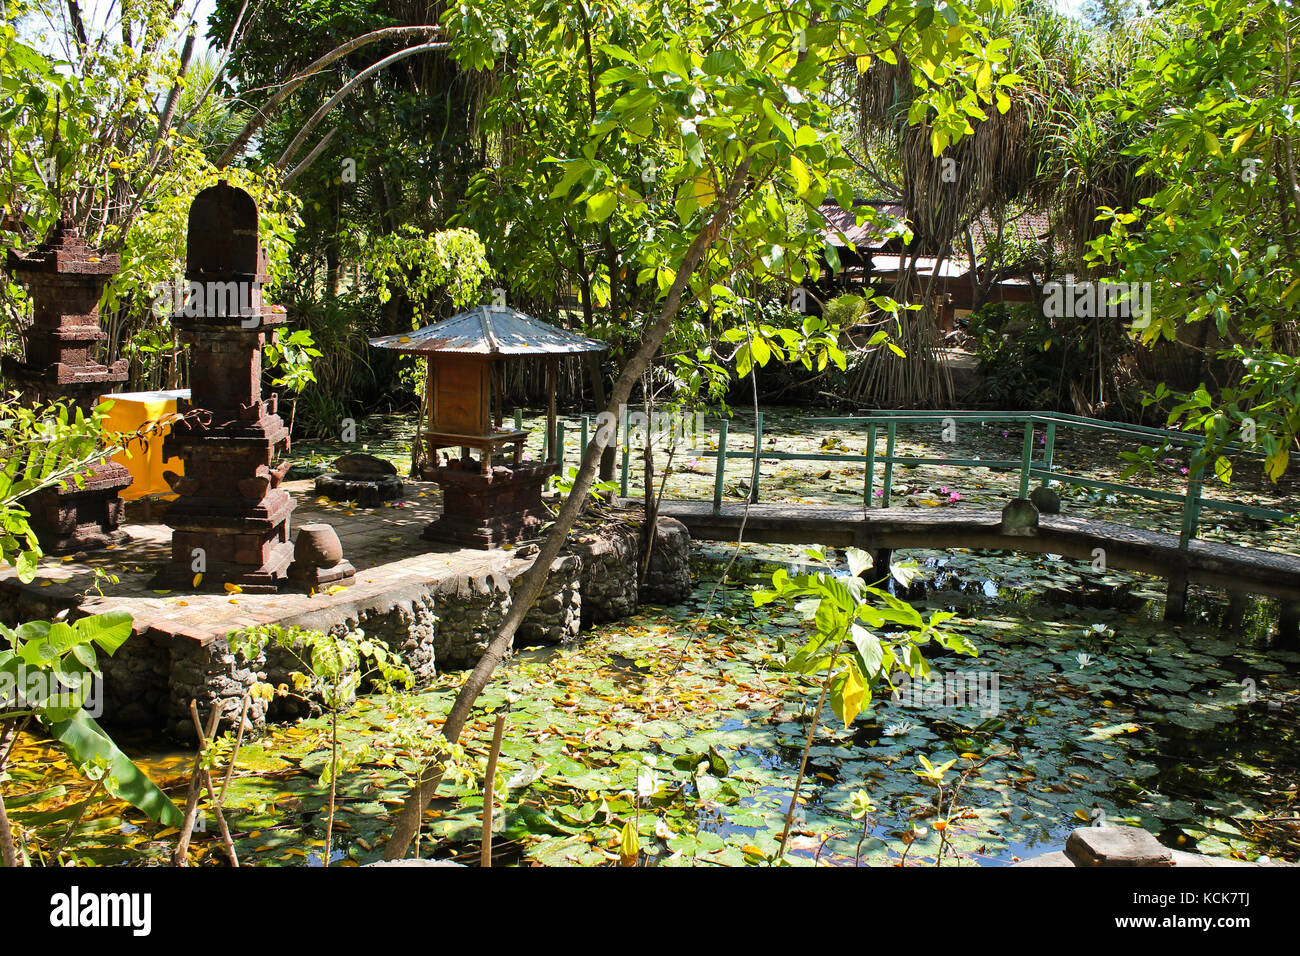 Bali can be found anywhere beautiful temples made as gems in suggestive corners- Pemuteran,Bali (Indonesia) - Stock Image